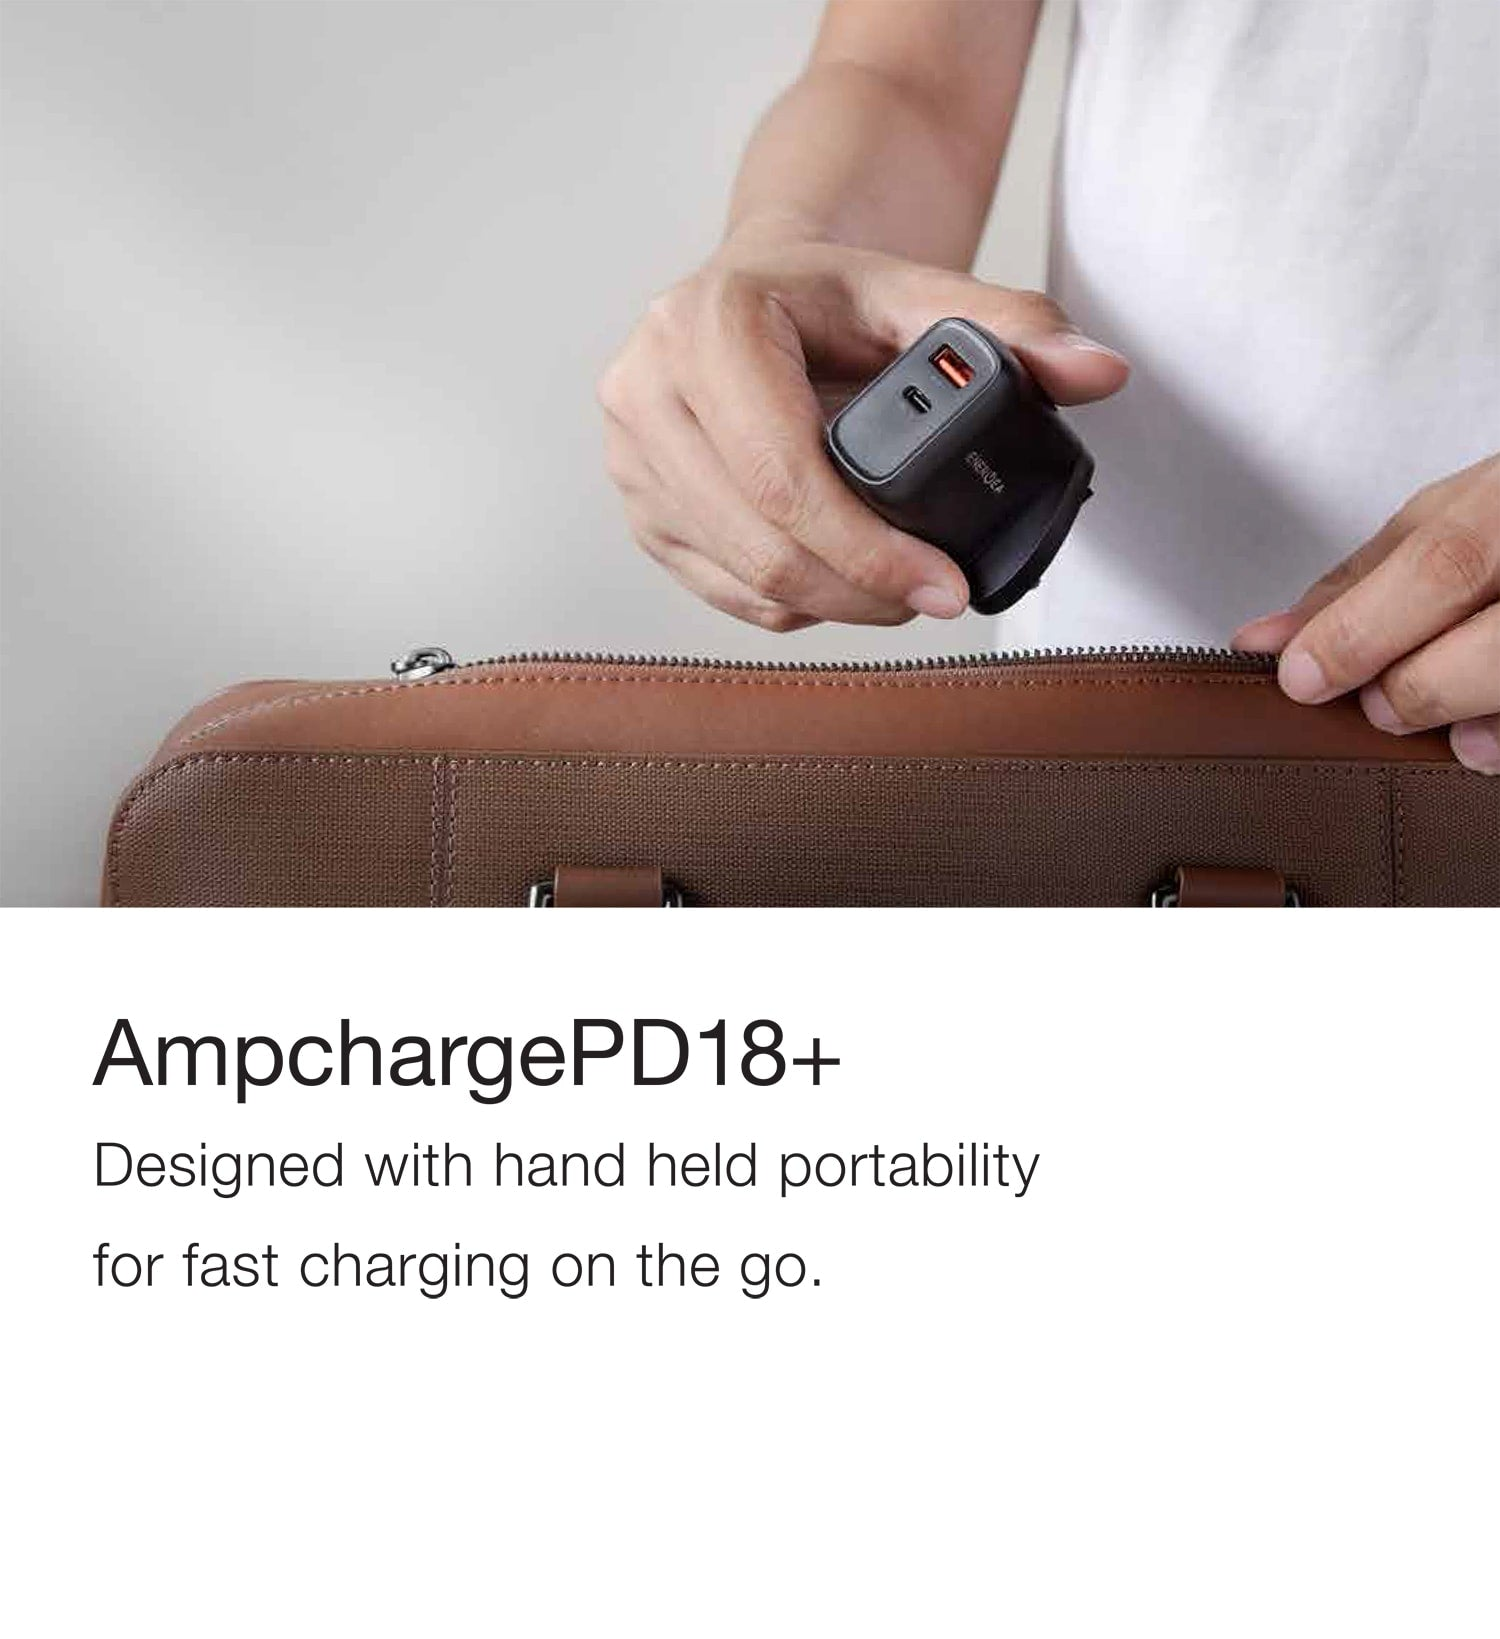 AmpCharge PD18+